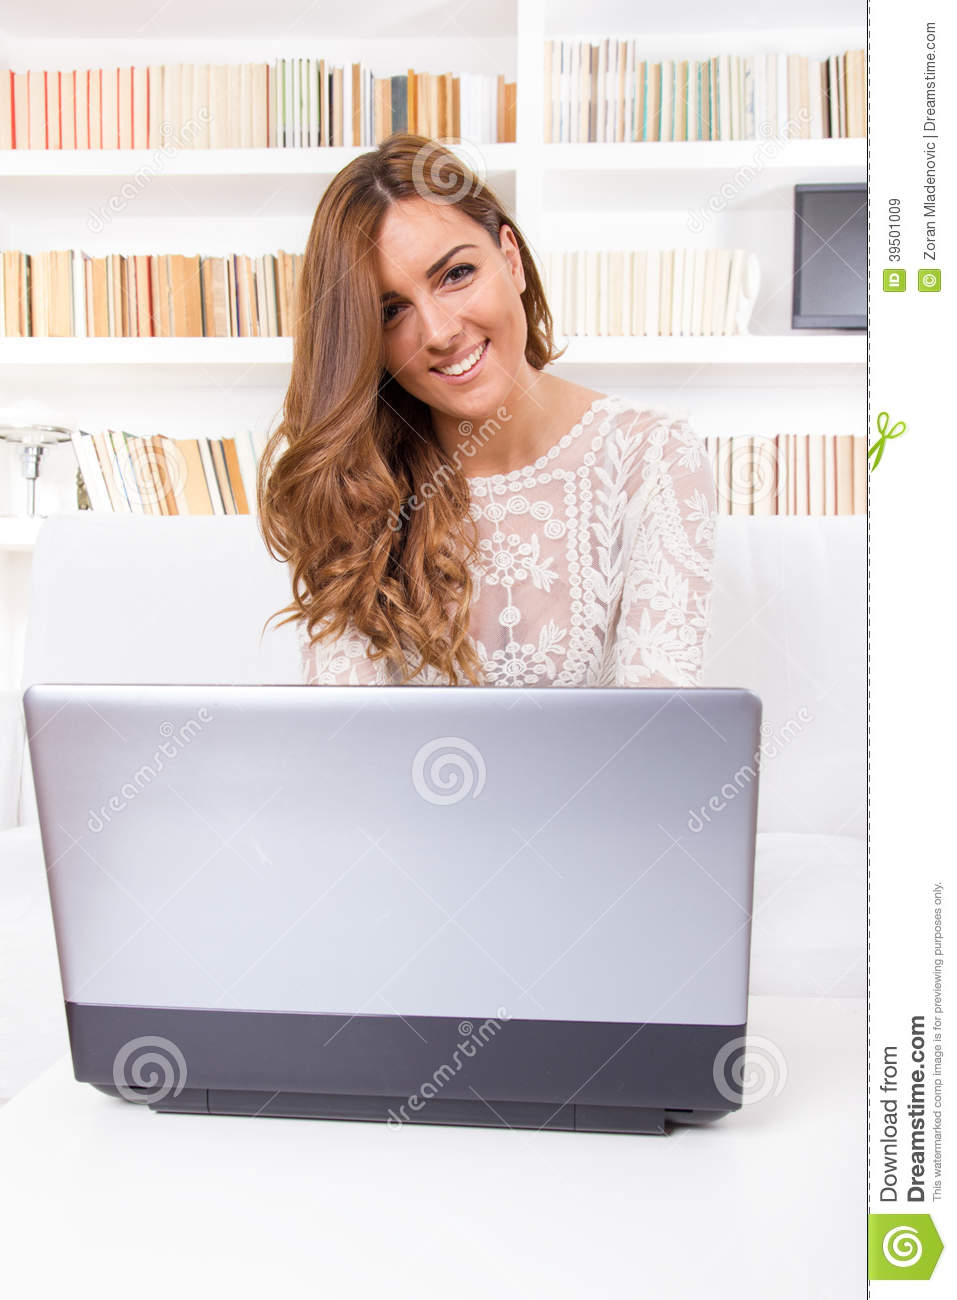 Woman using a laptop computer at home and looking in camera